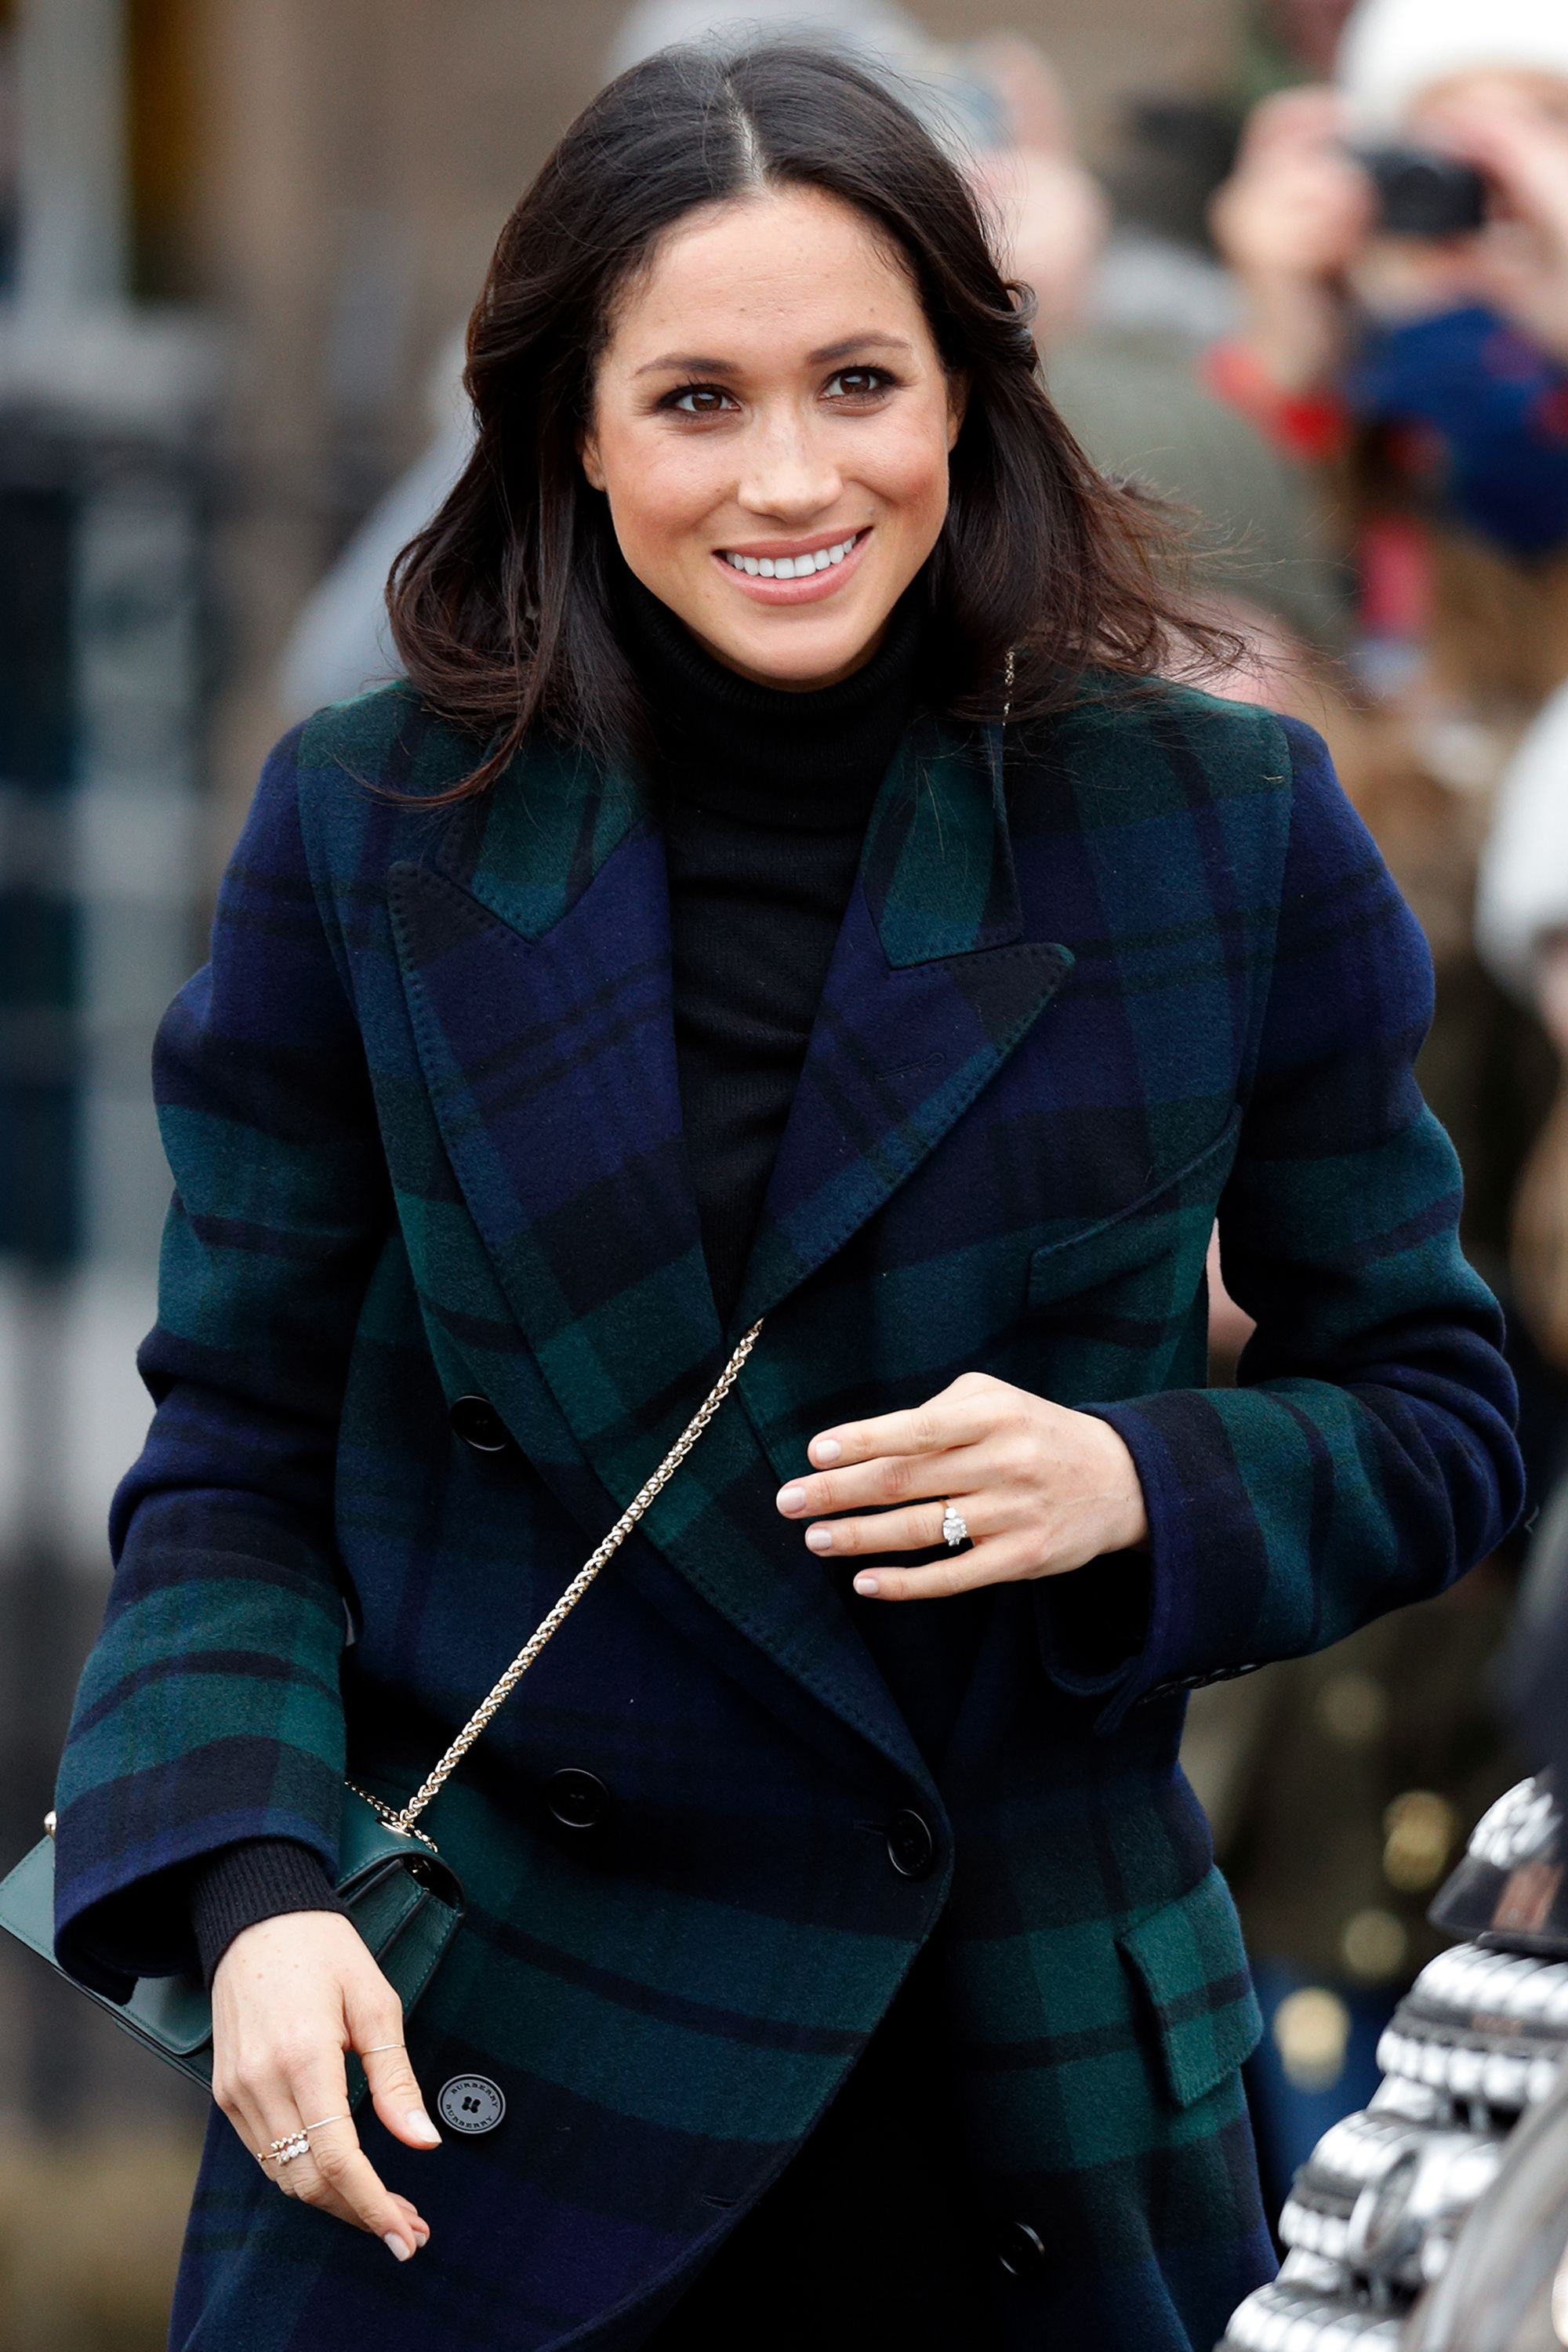 Meghan Markle Facts 30 Things You Didn't Know About Meghan